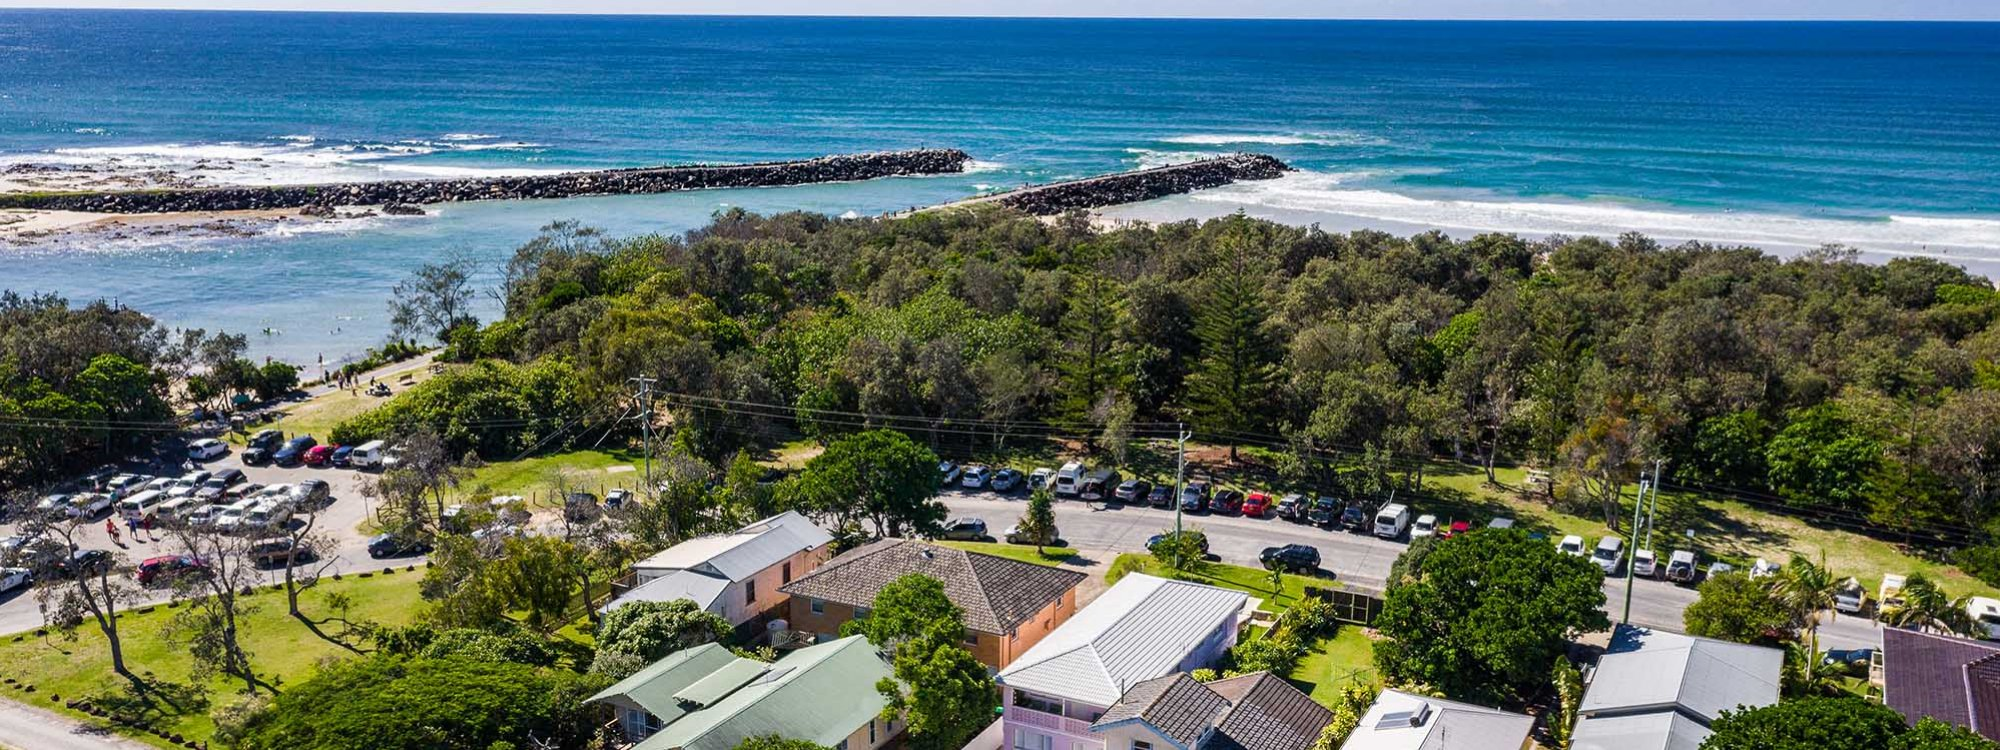 Sunset Beach - Brunswick Heads - Aerial Looking Northeast